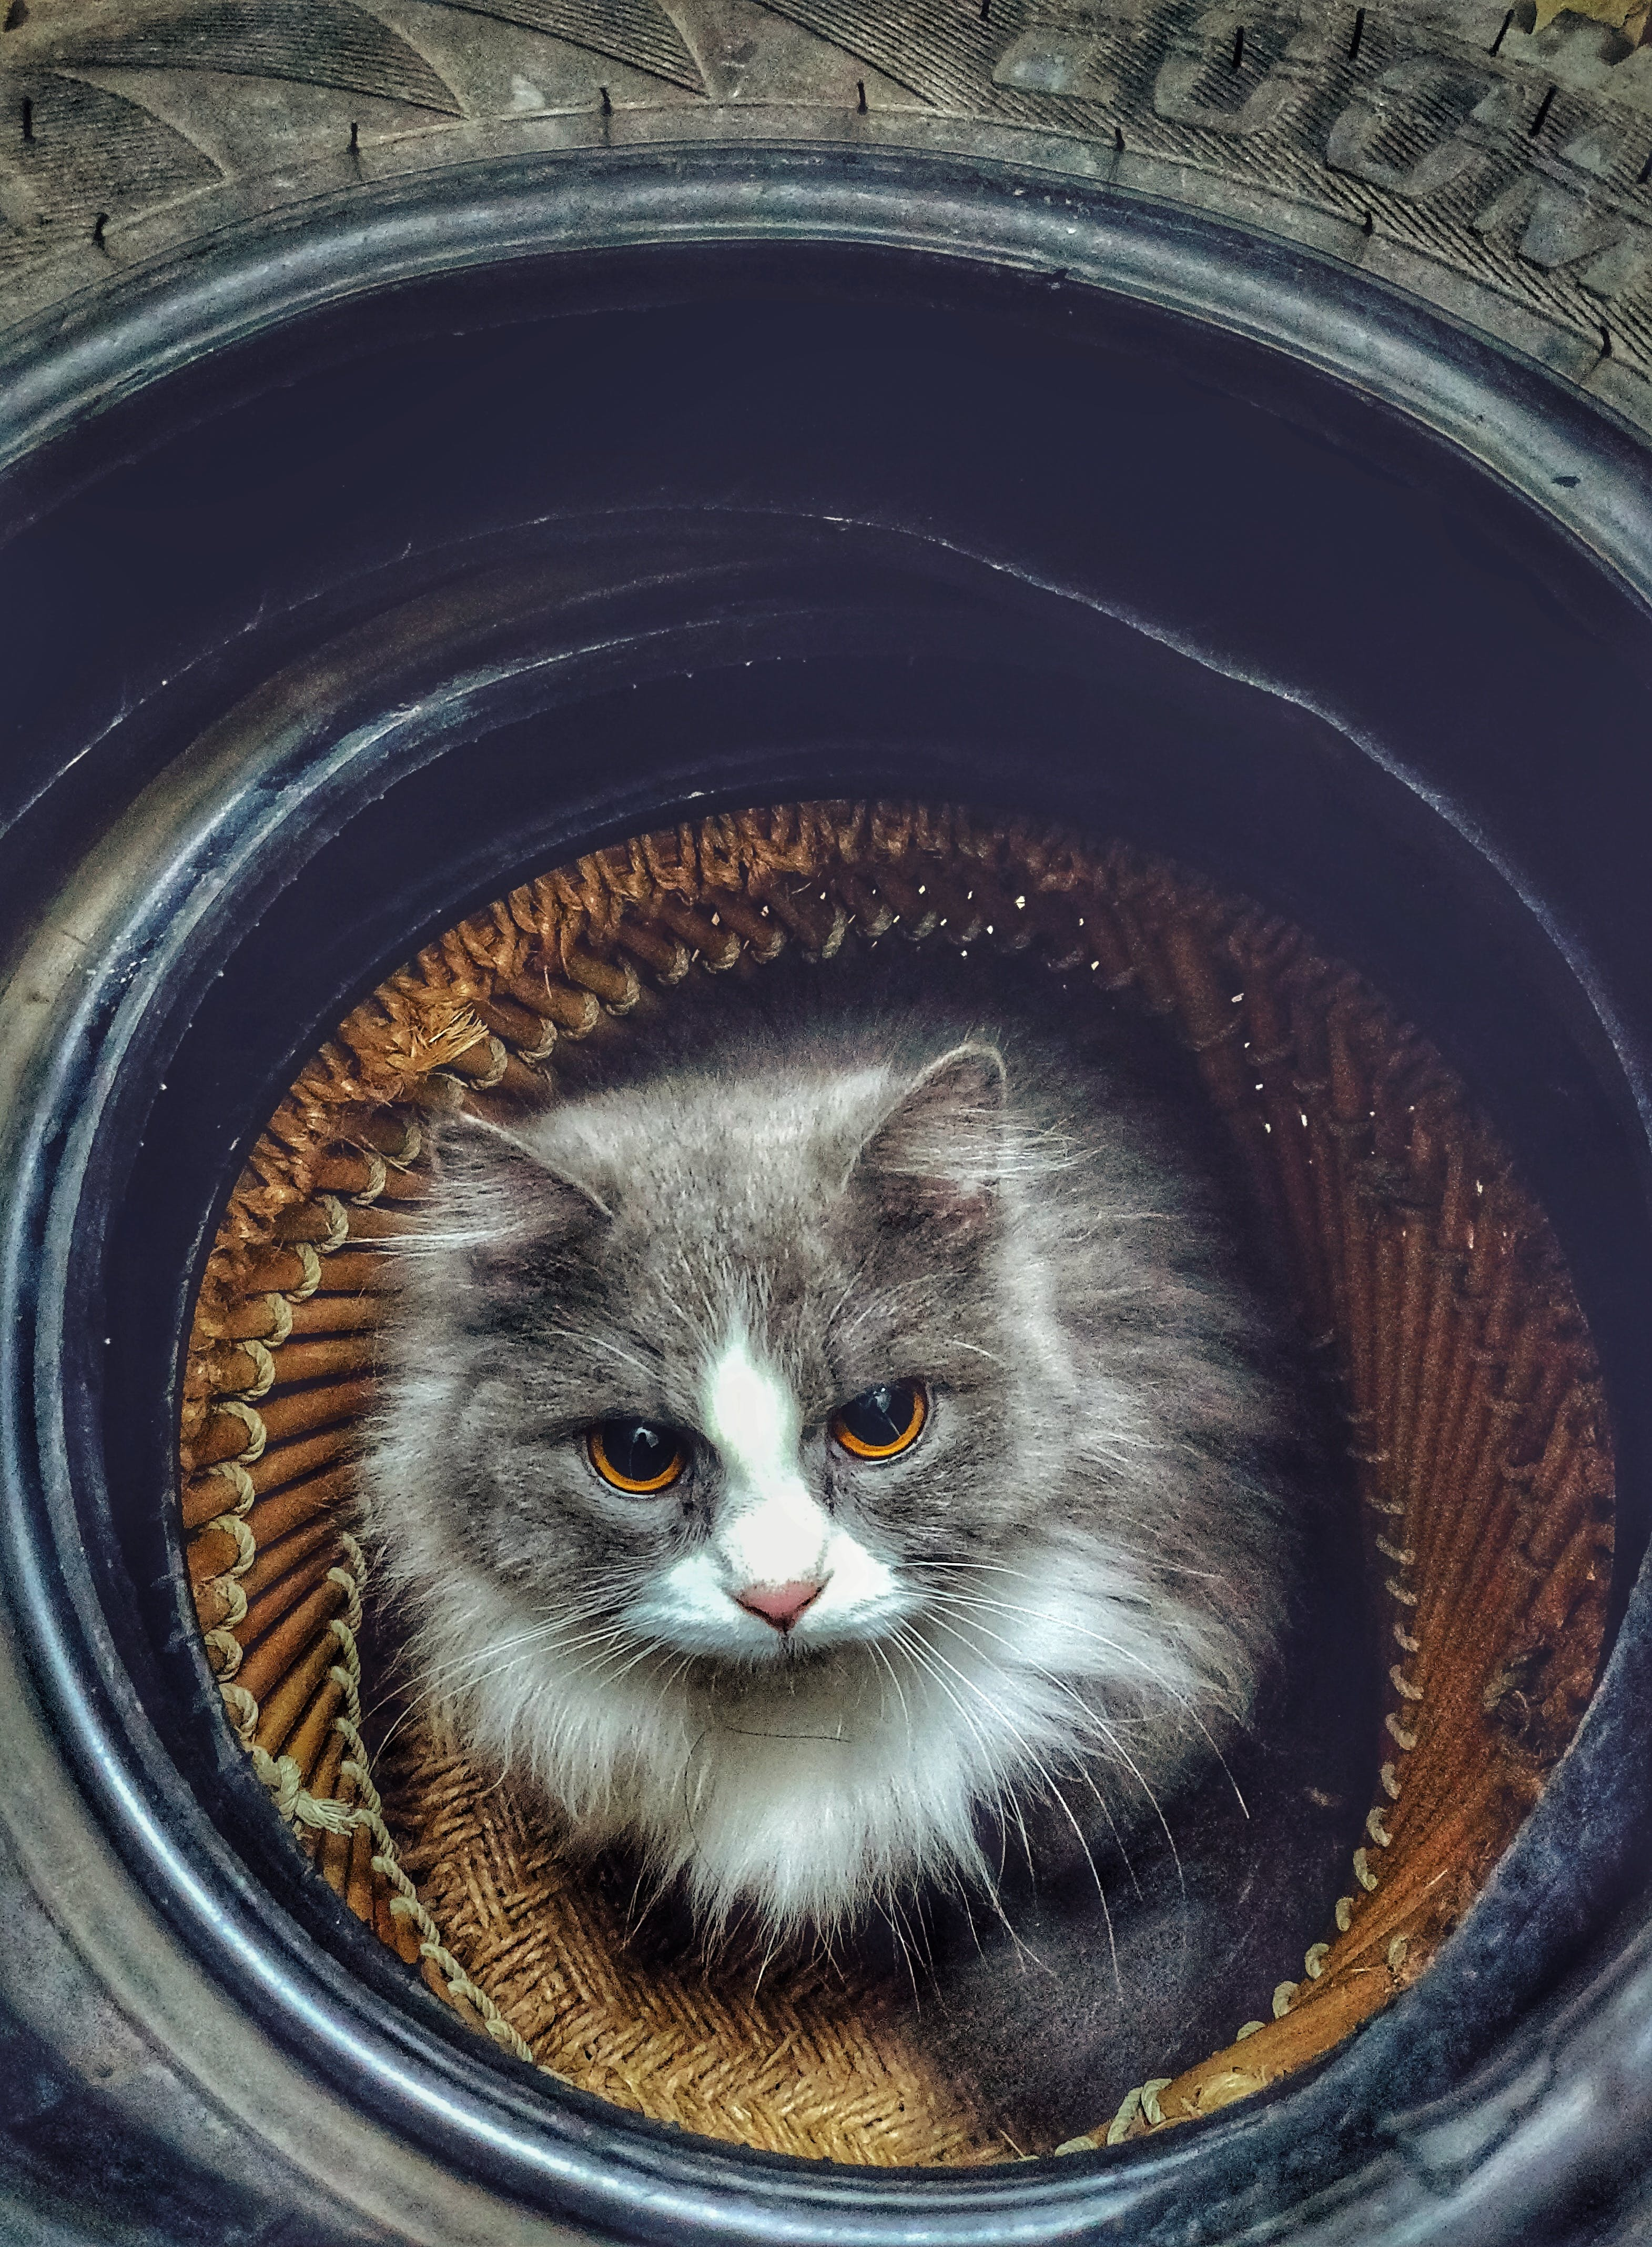 Gray and White Cat on Tire